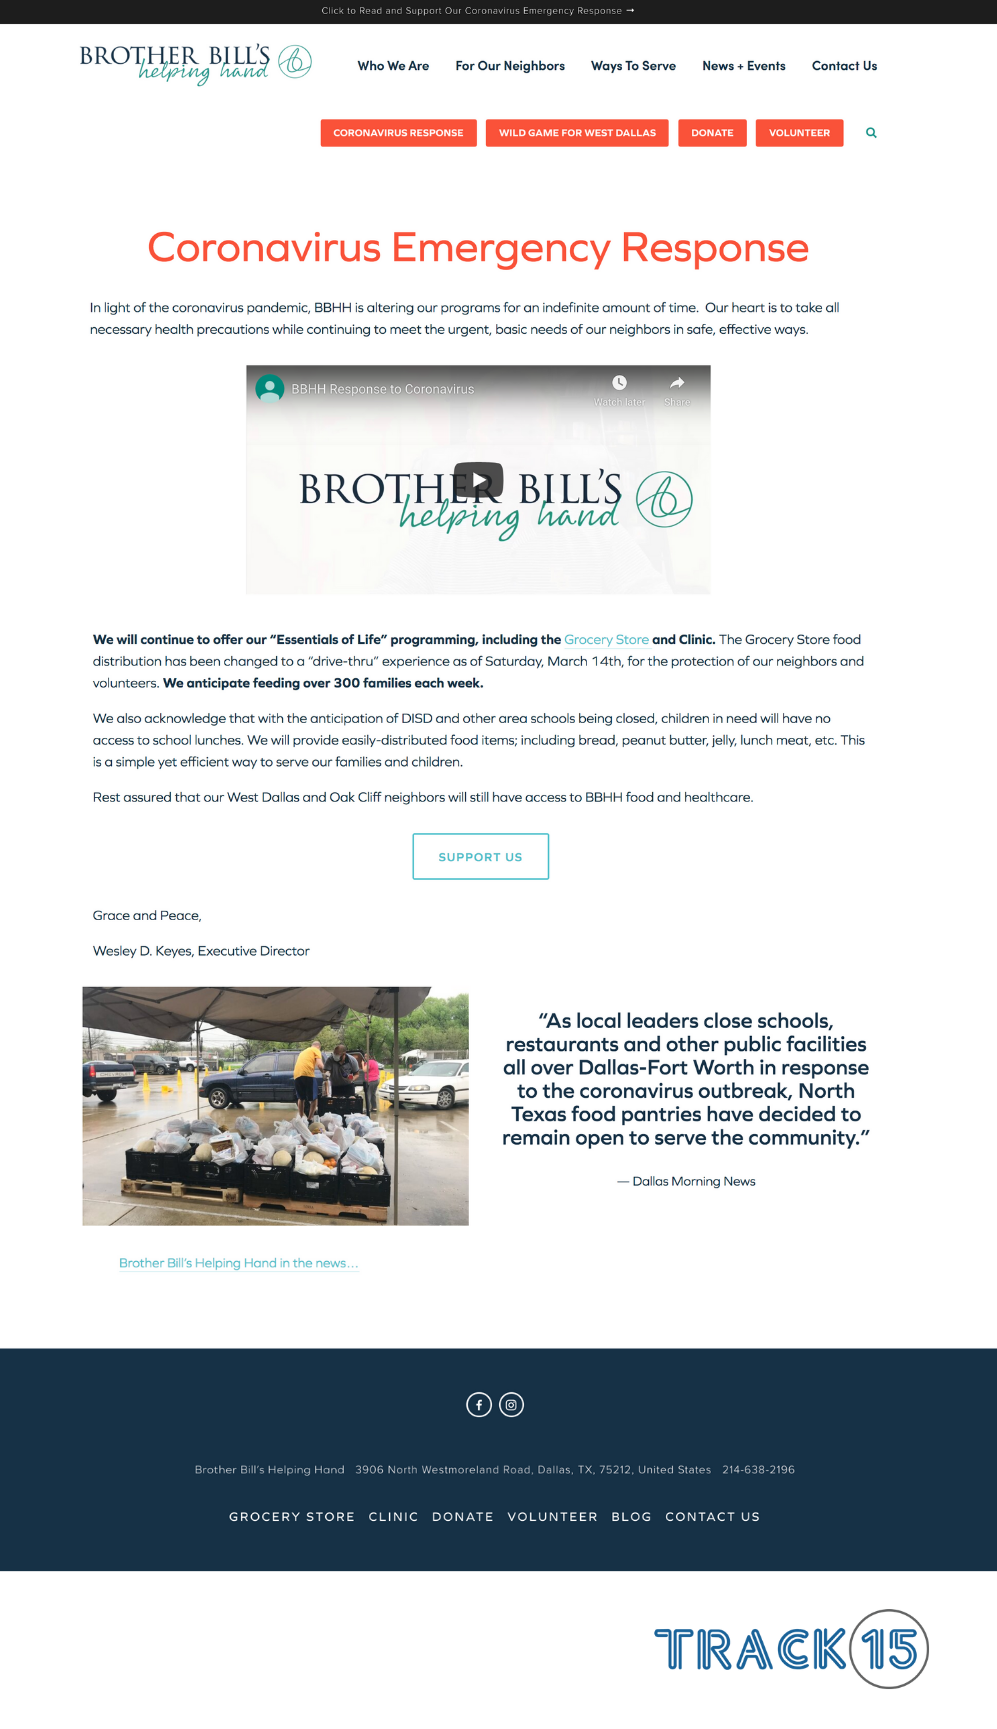 Brother Bill's Helping Hand Landing Page: COVID-19 Response